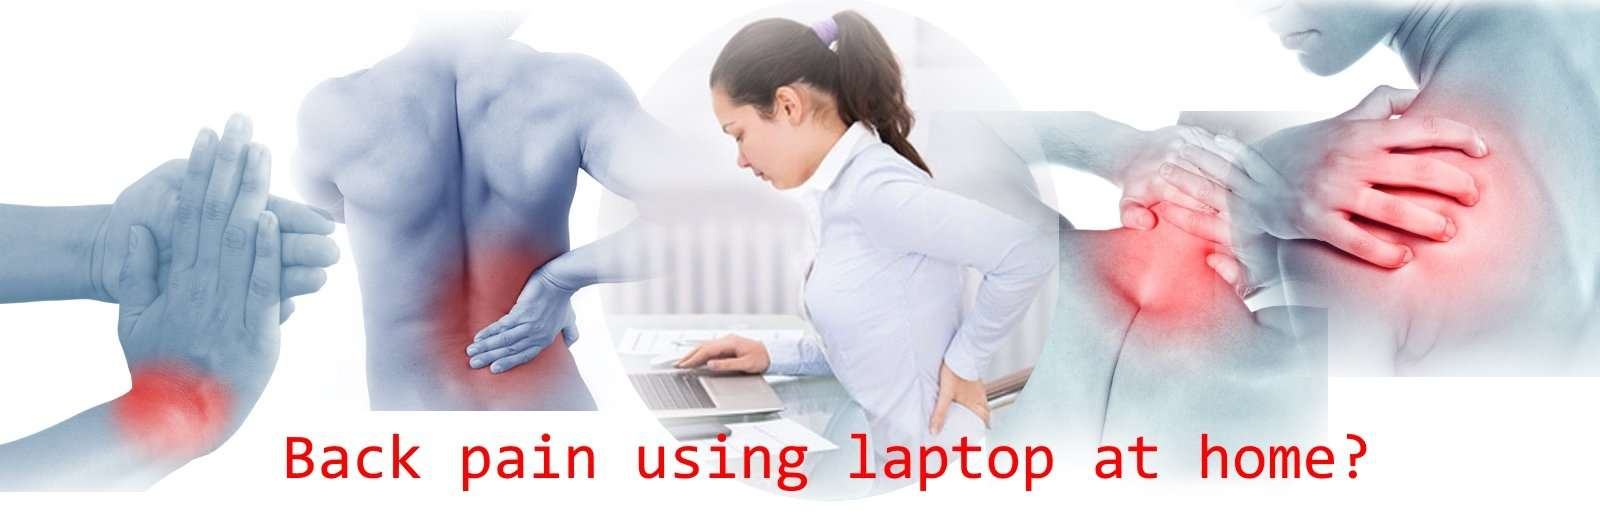 backpain usng laptop at home